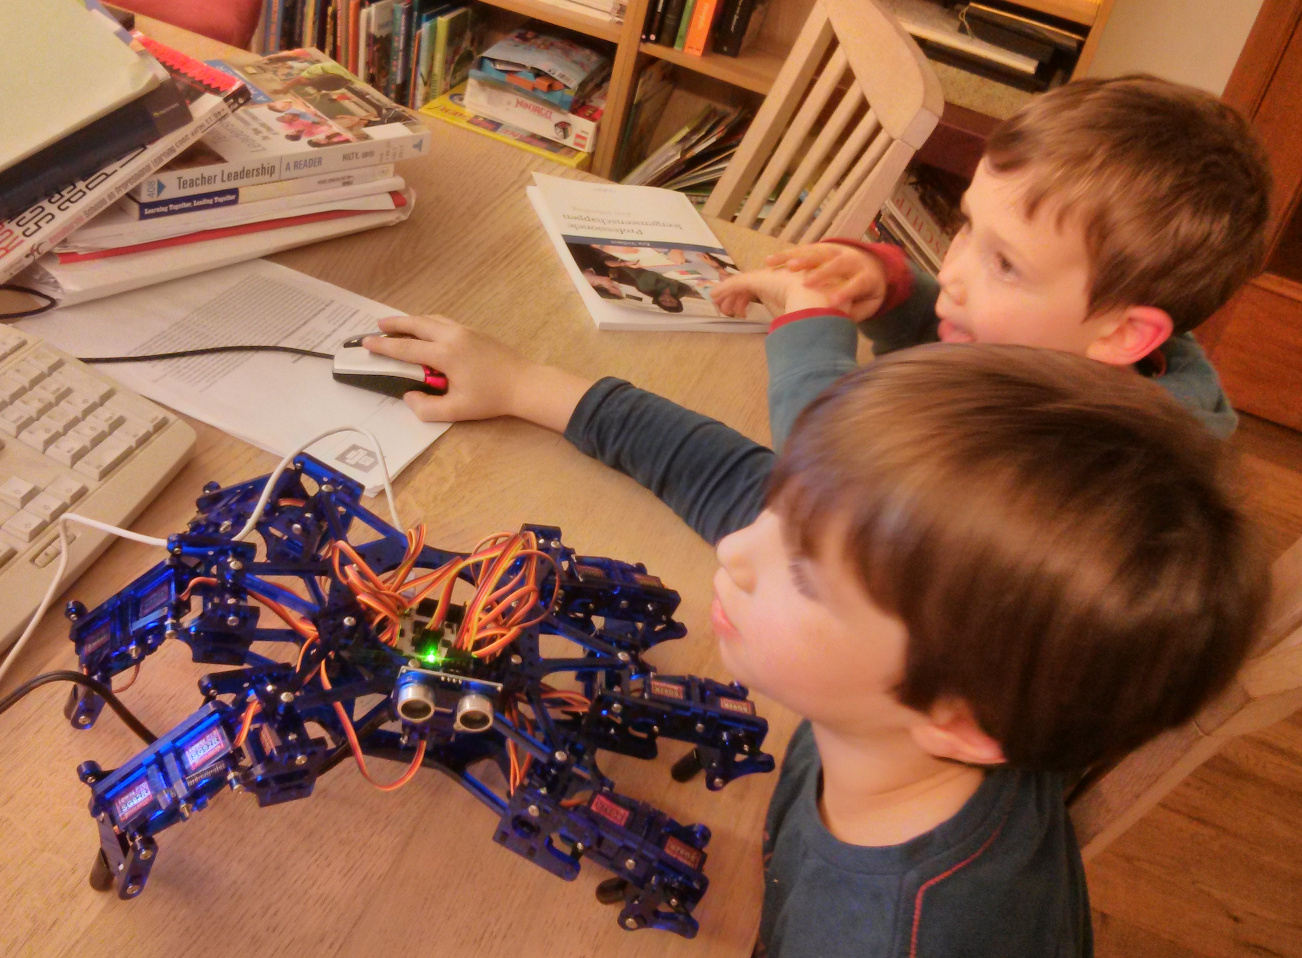 Hexapod, my kids like it as well